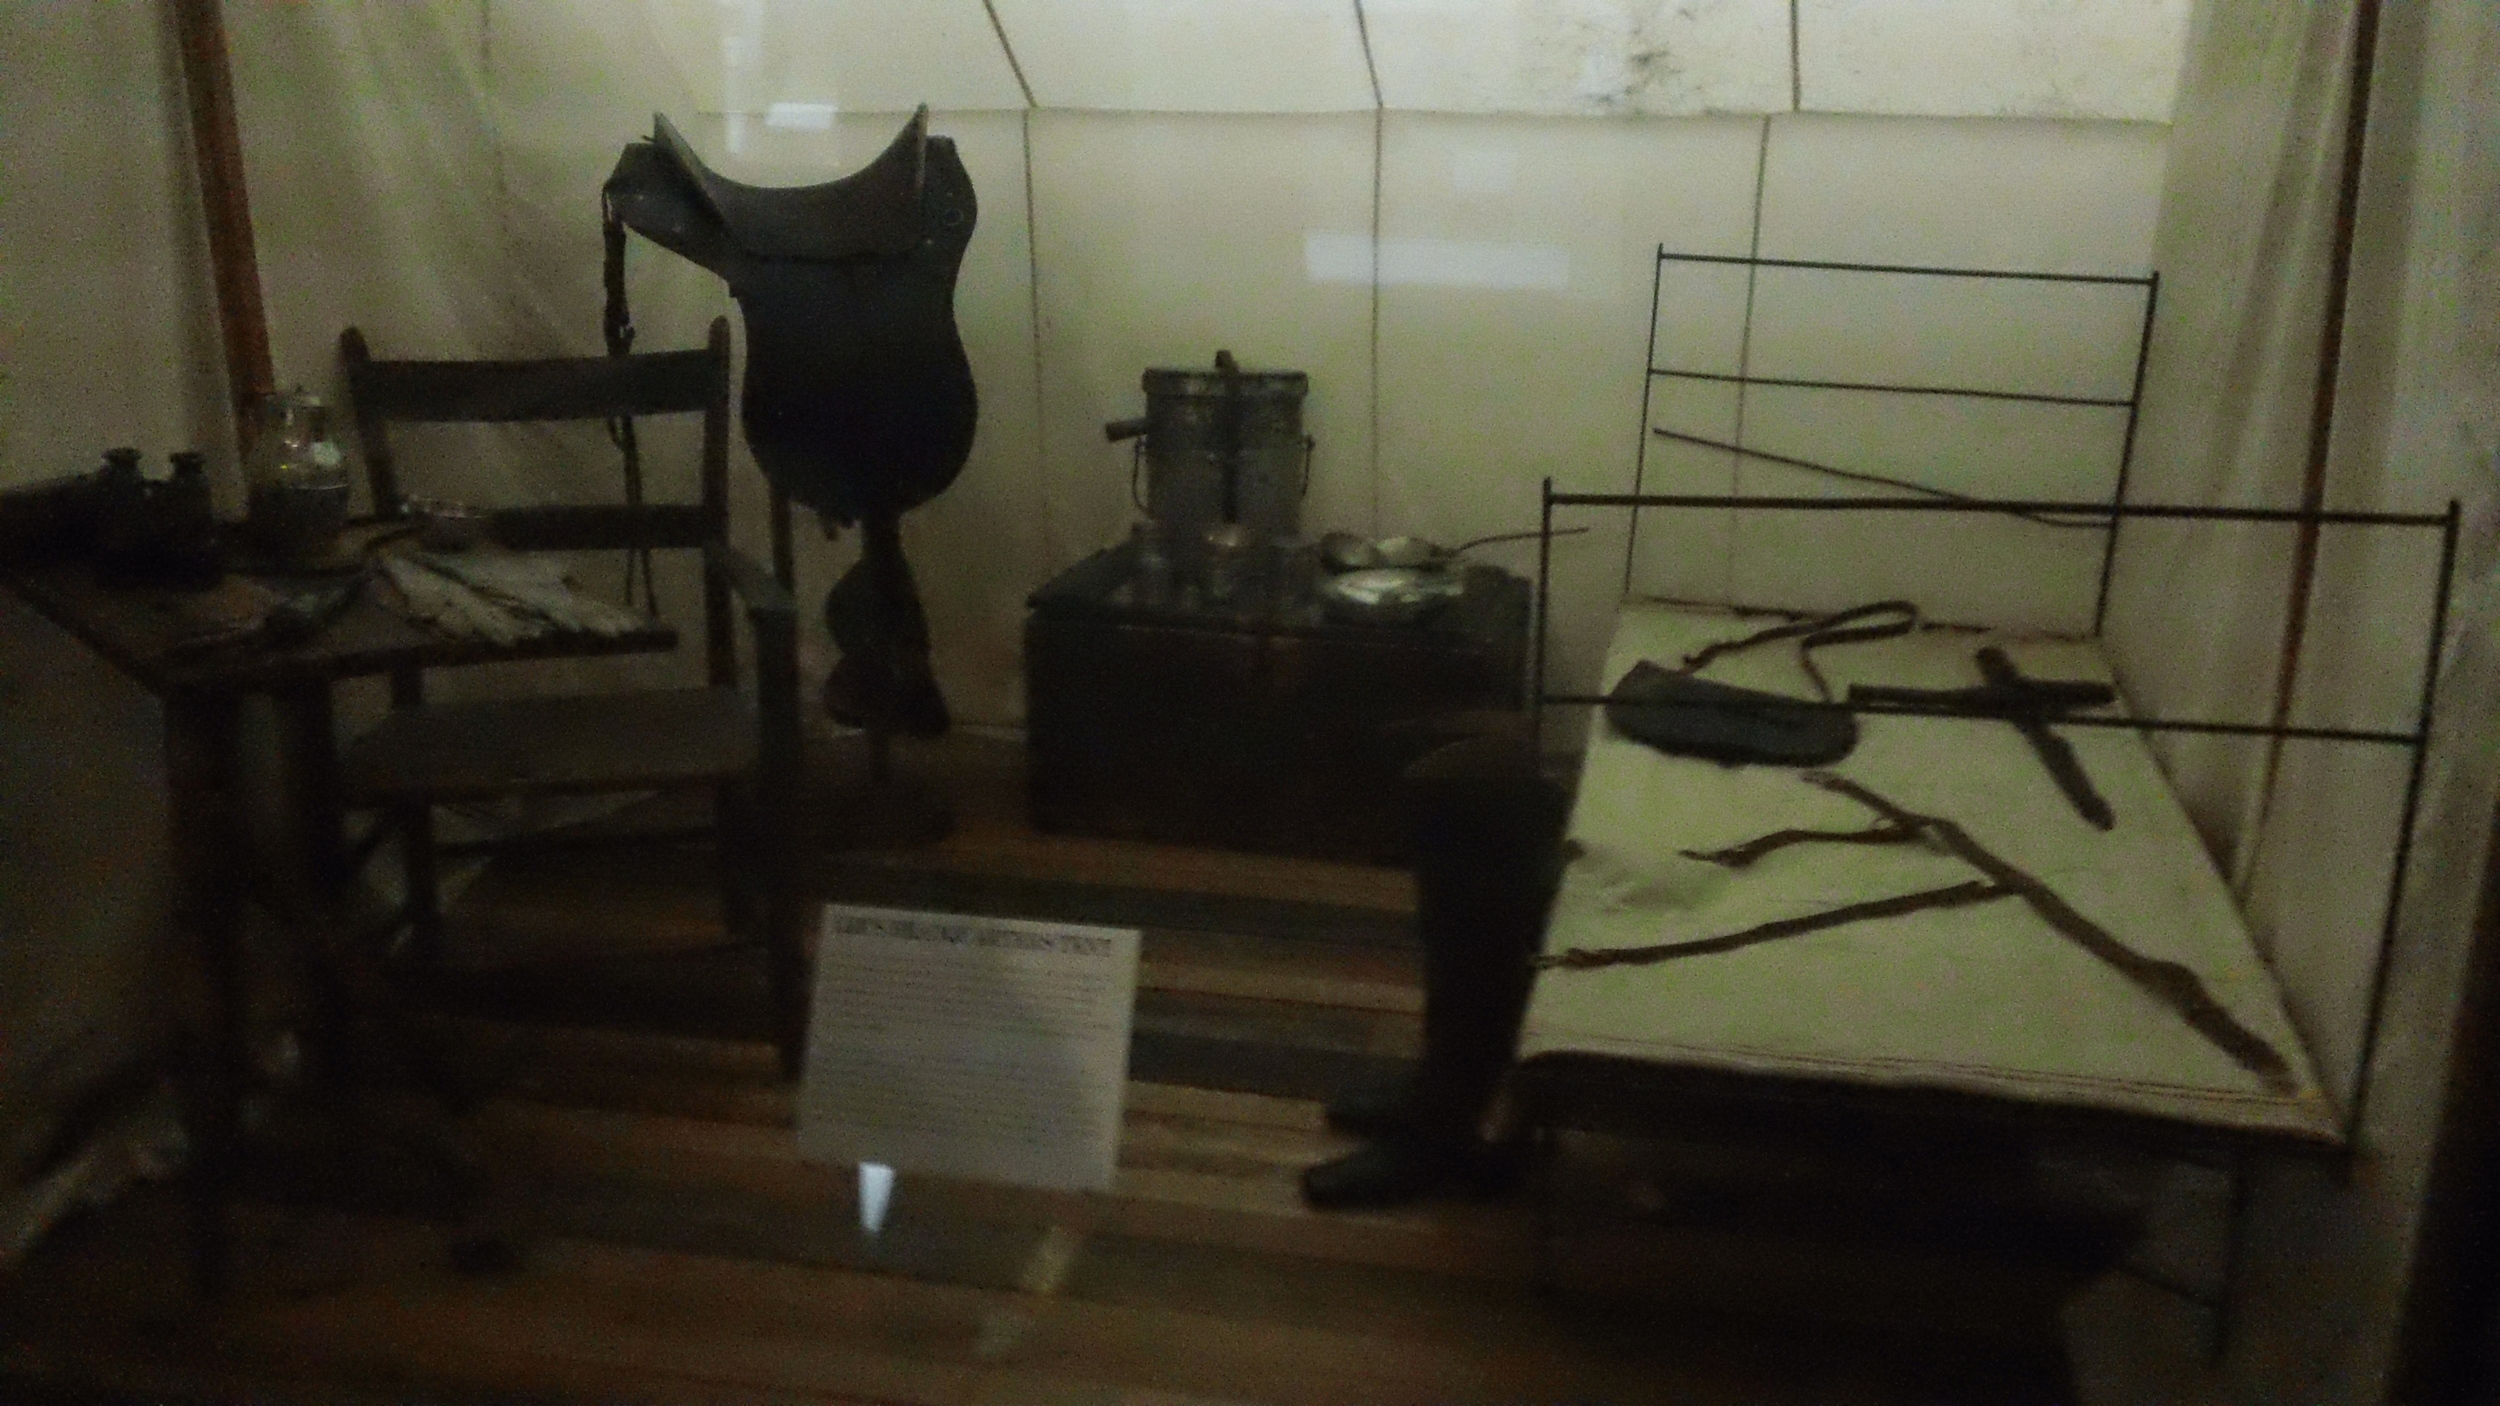 The camp equipment of Robert E. Lee.  Double whoa.